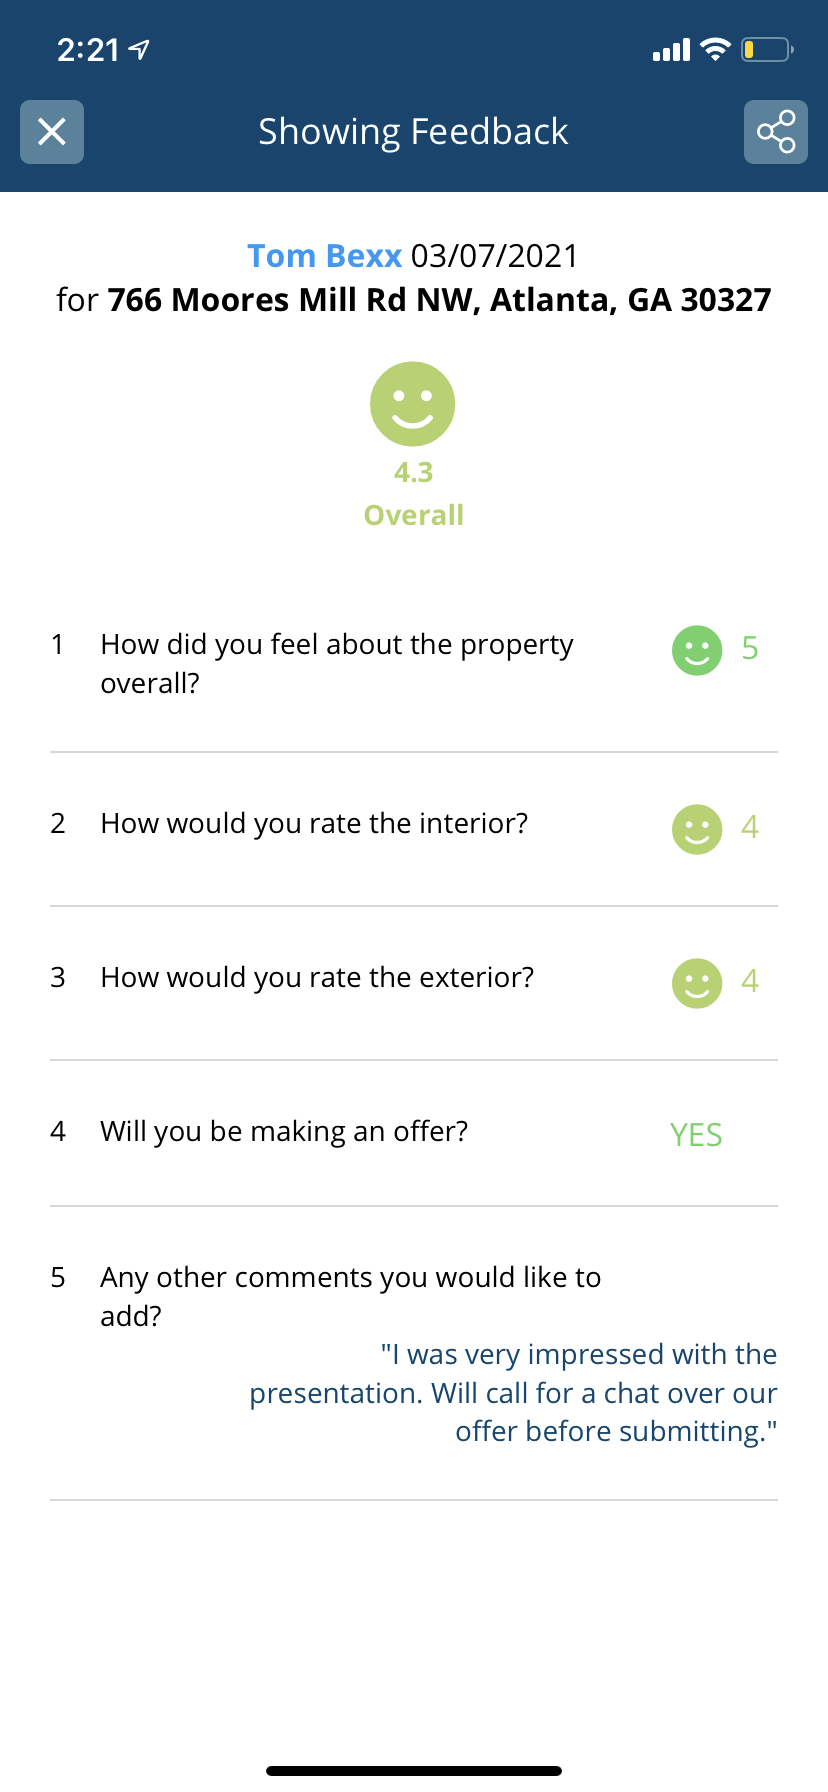 showing feedback survey results